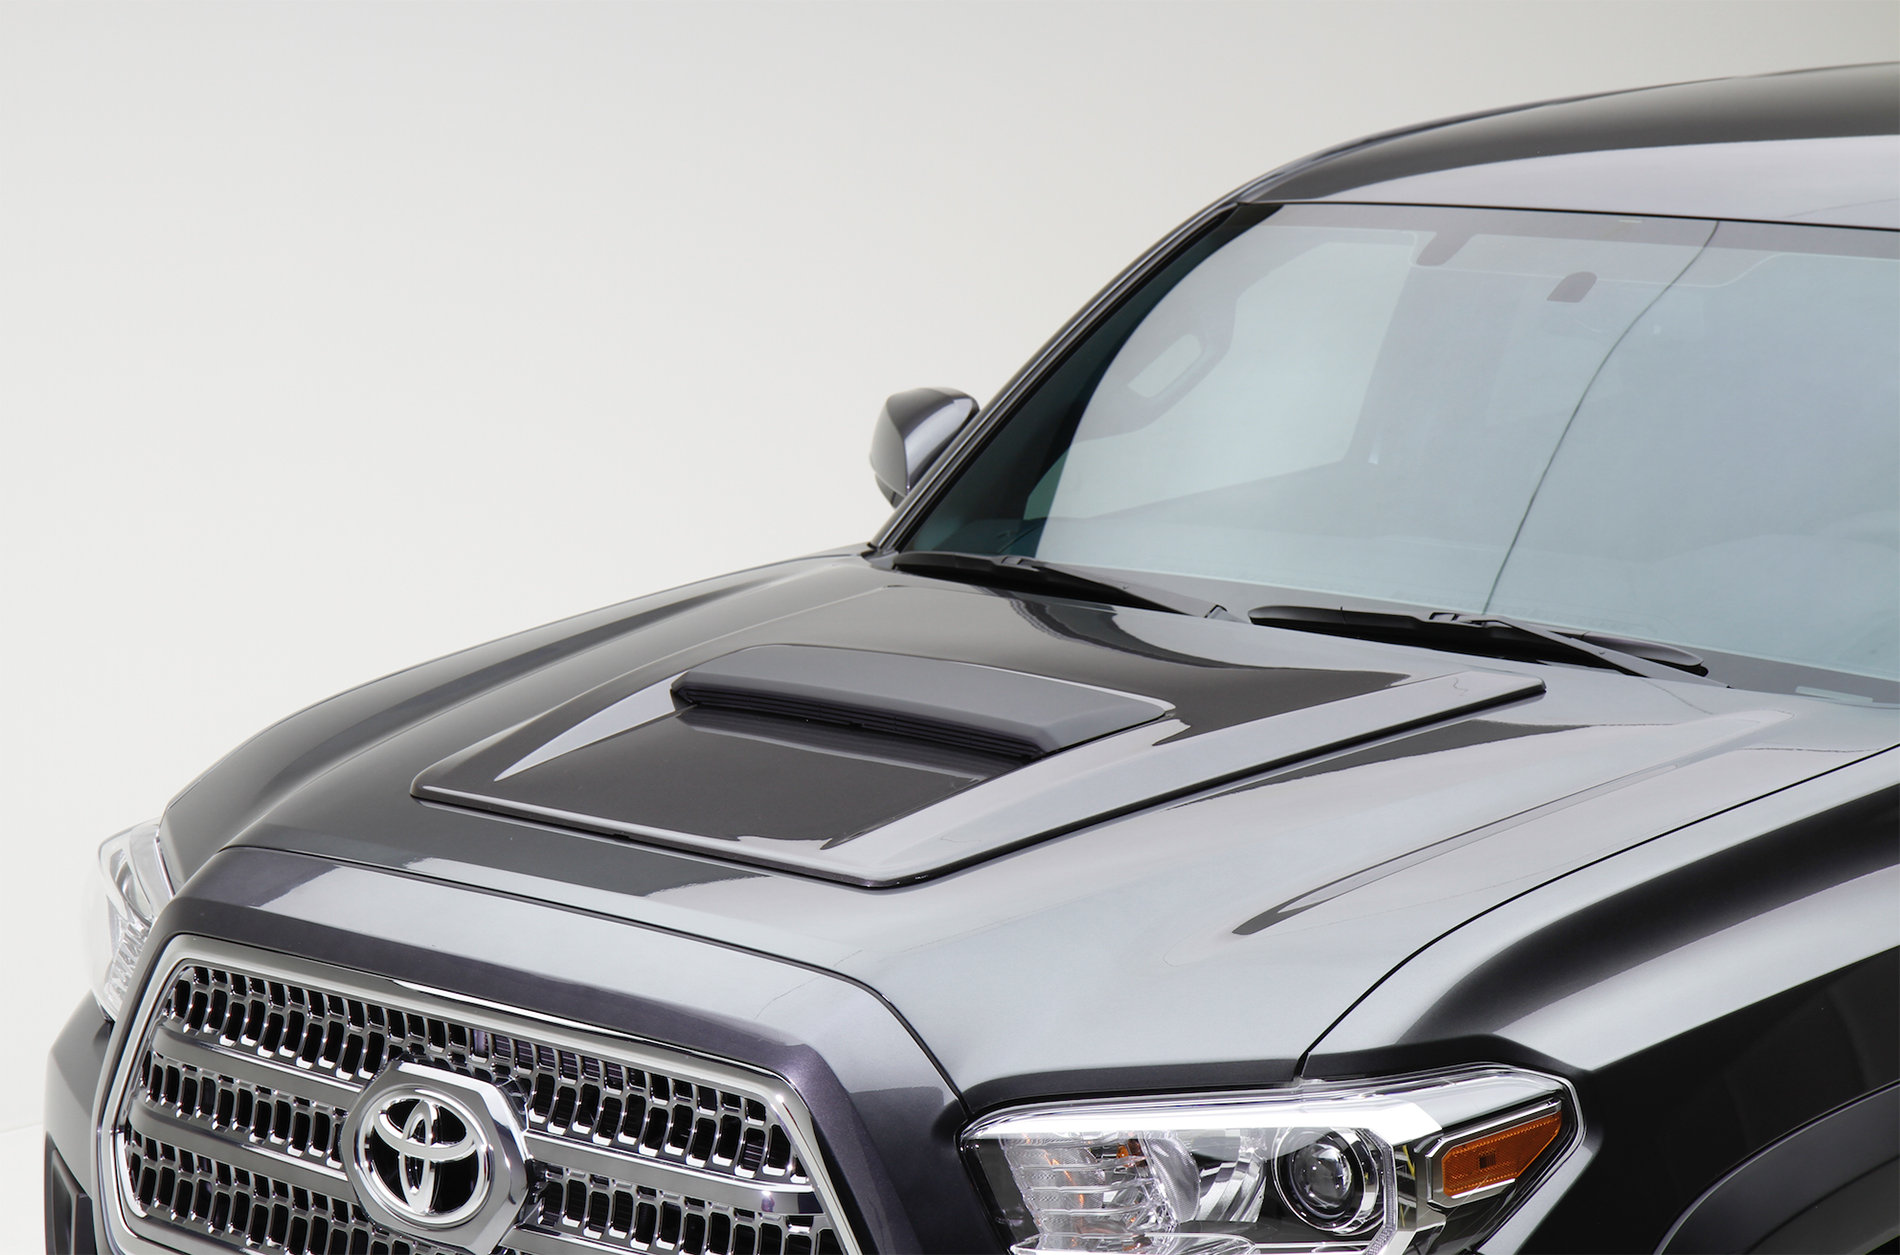 Airdesign Unveiled A New Hood Scoop For 2016 Up Toyota Tacoma